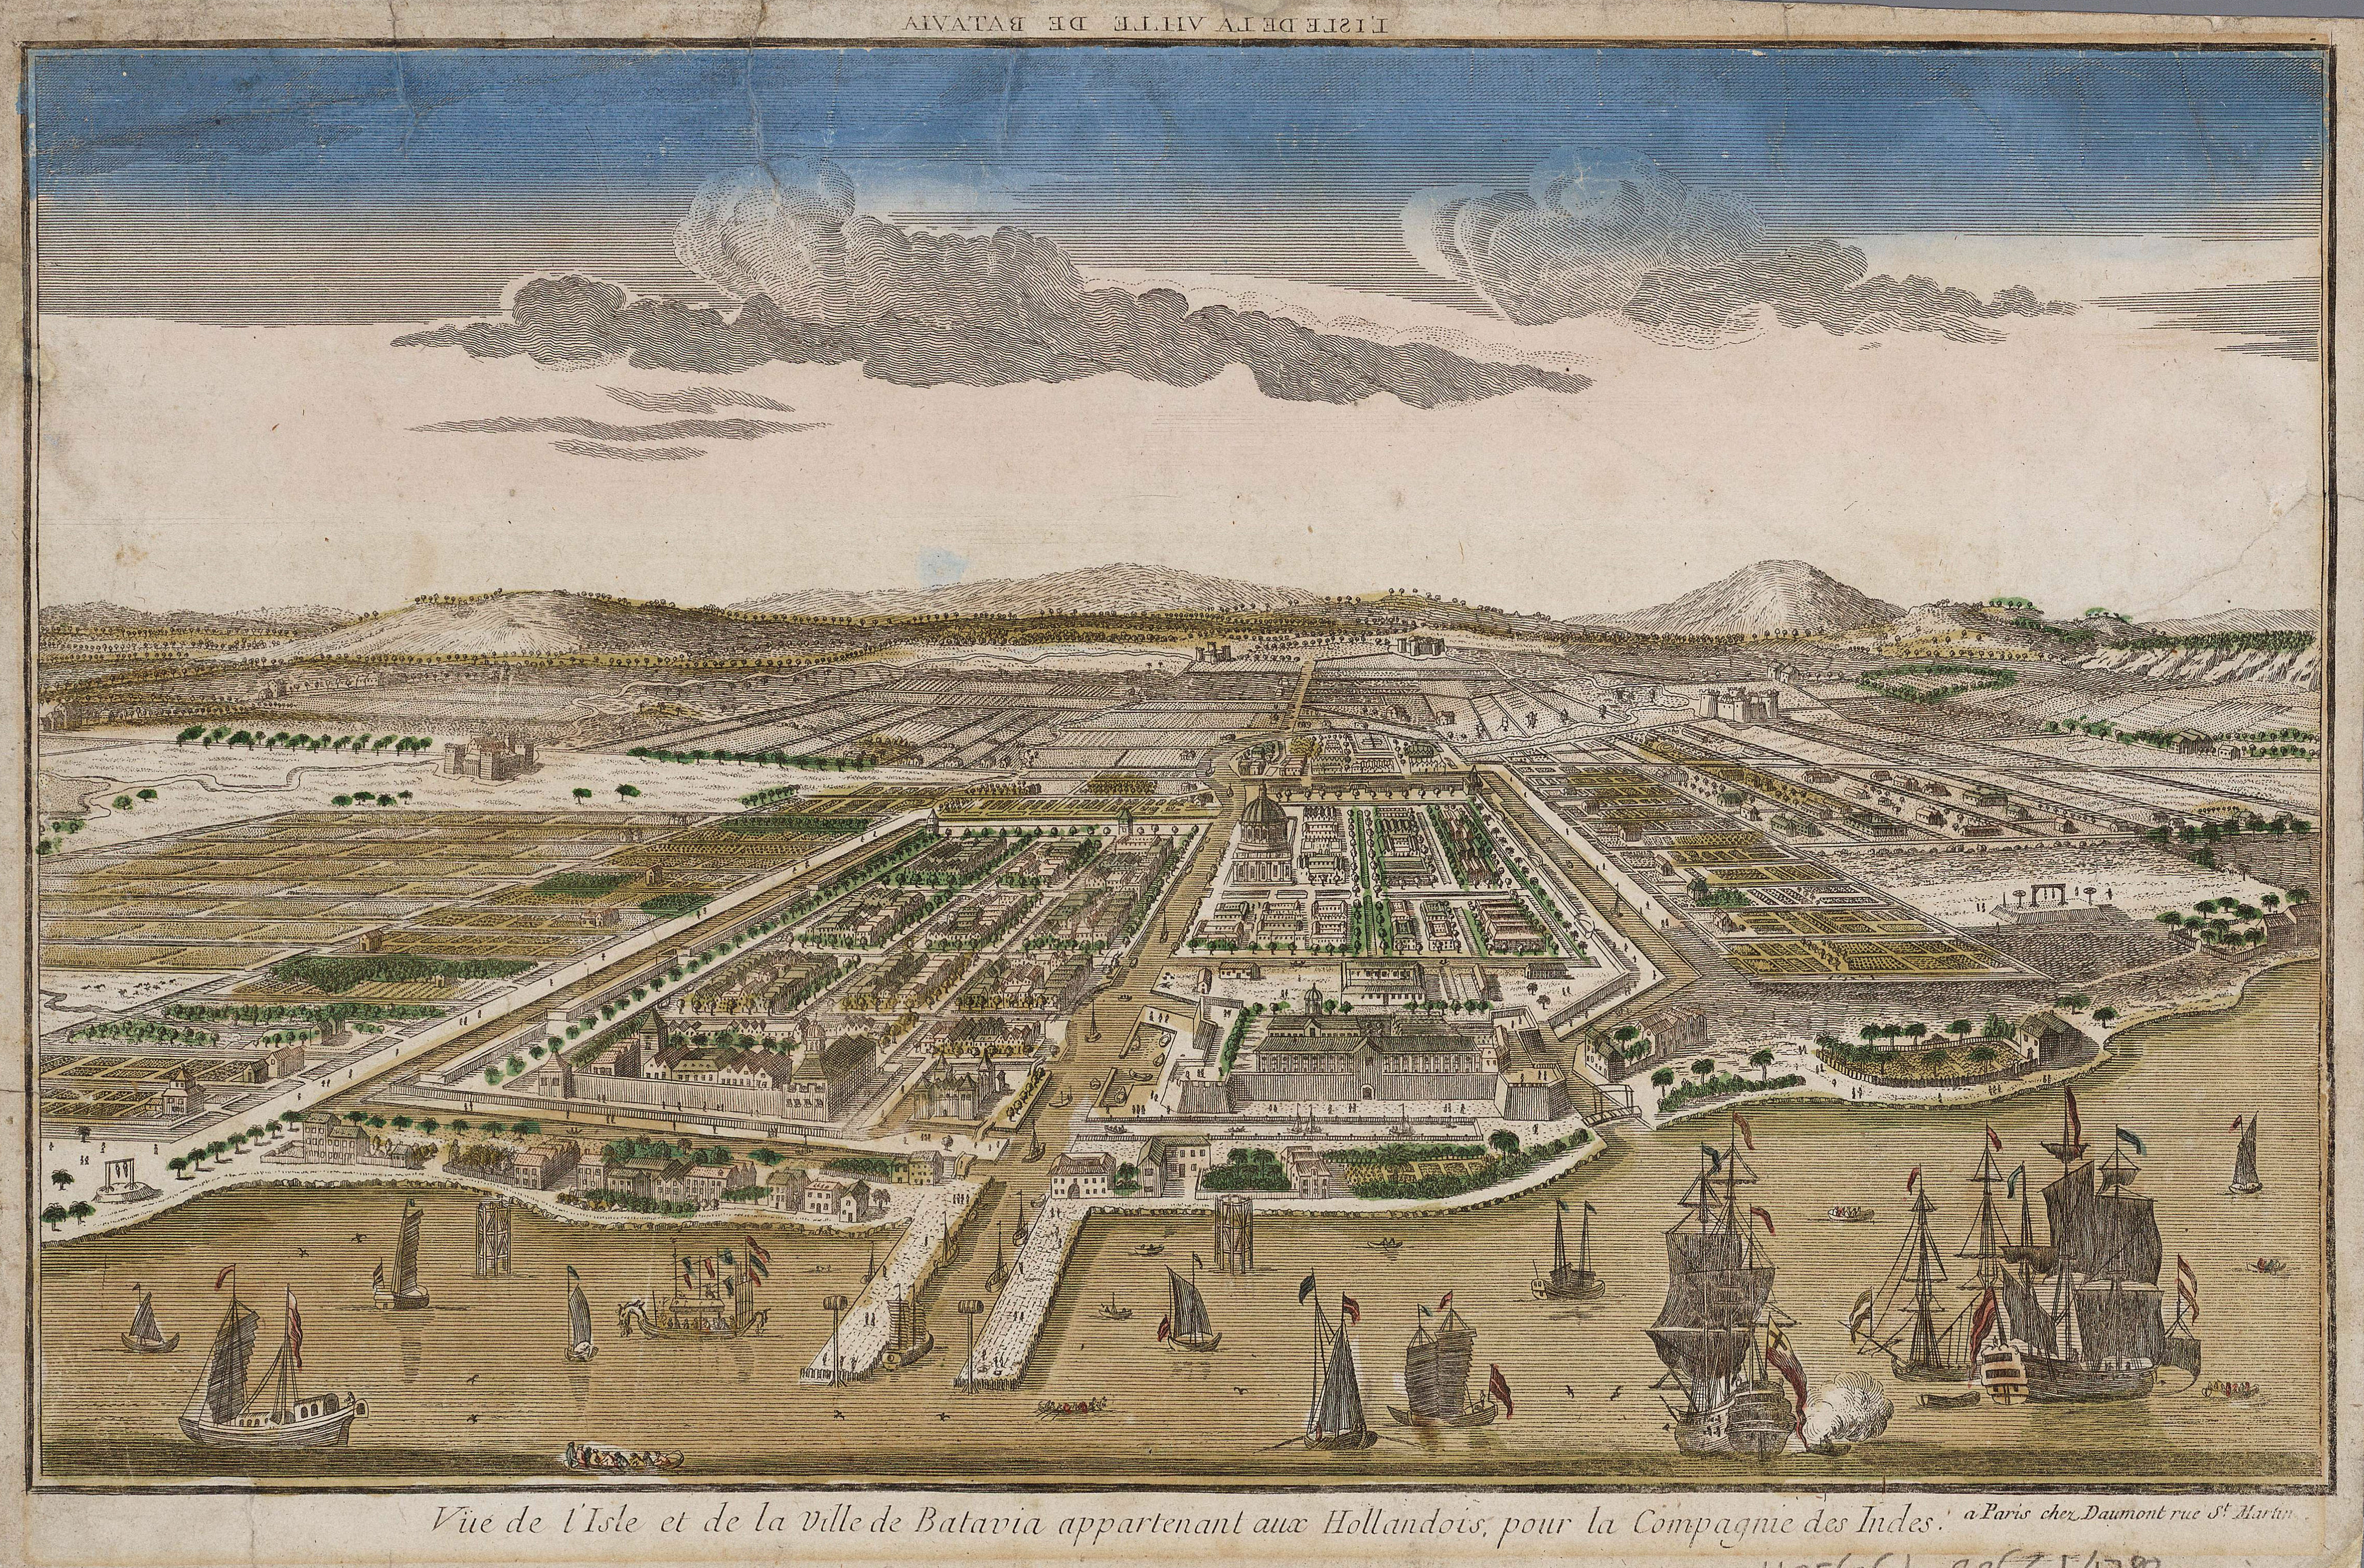 Image of Batavia, capital of the Dutch East Indies in what is now North Jakarta, circa 1780.